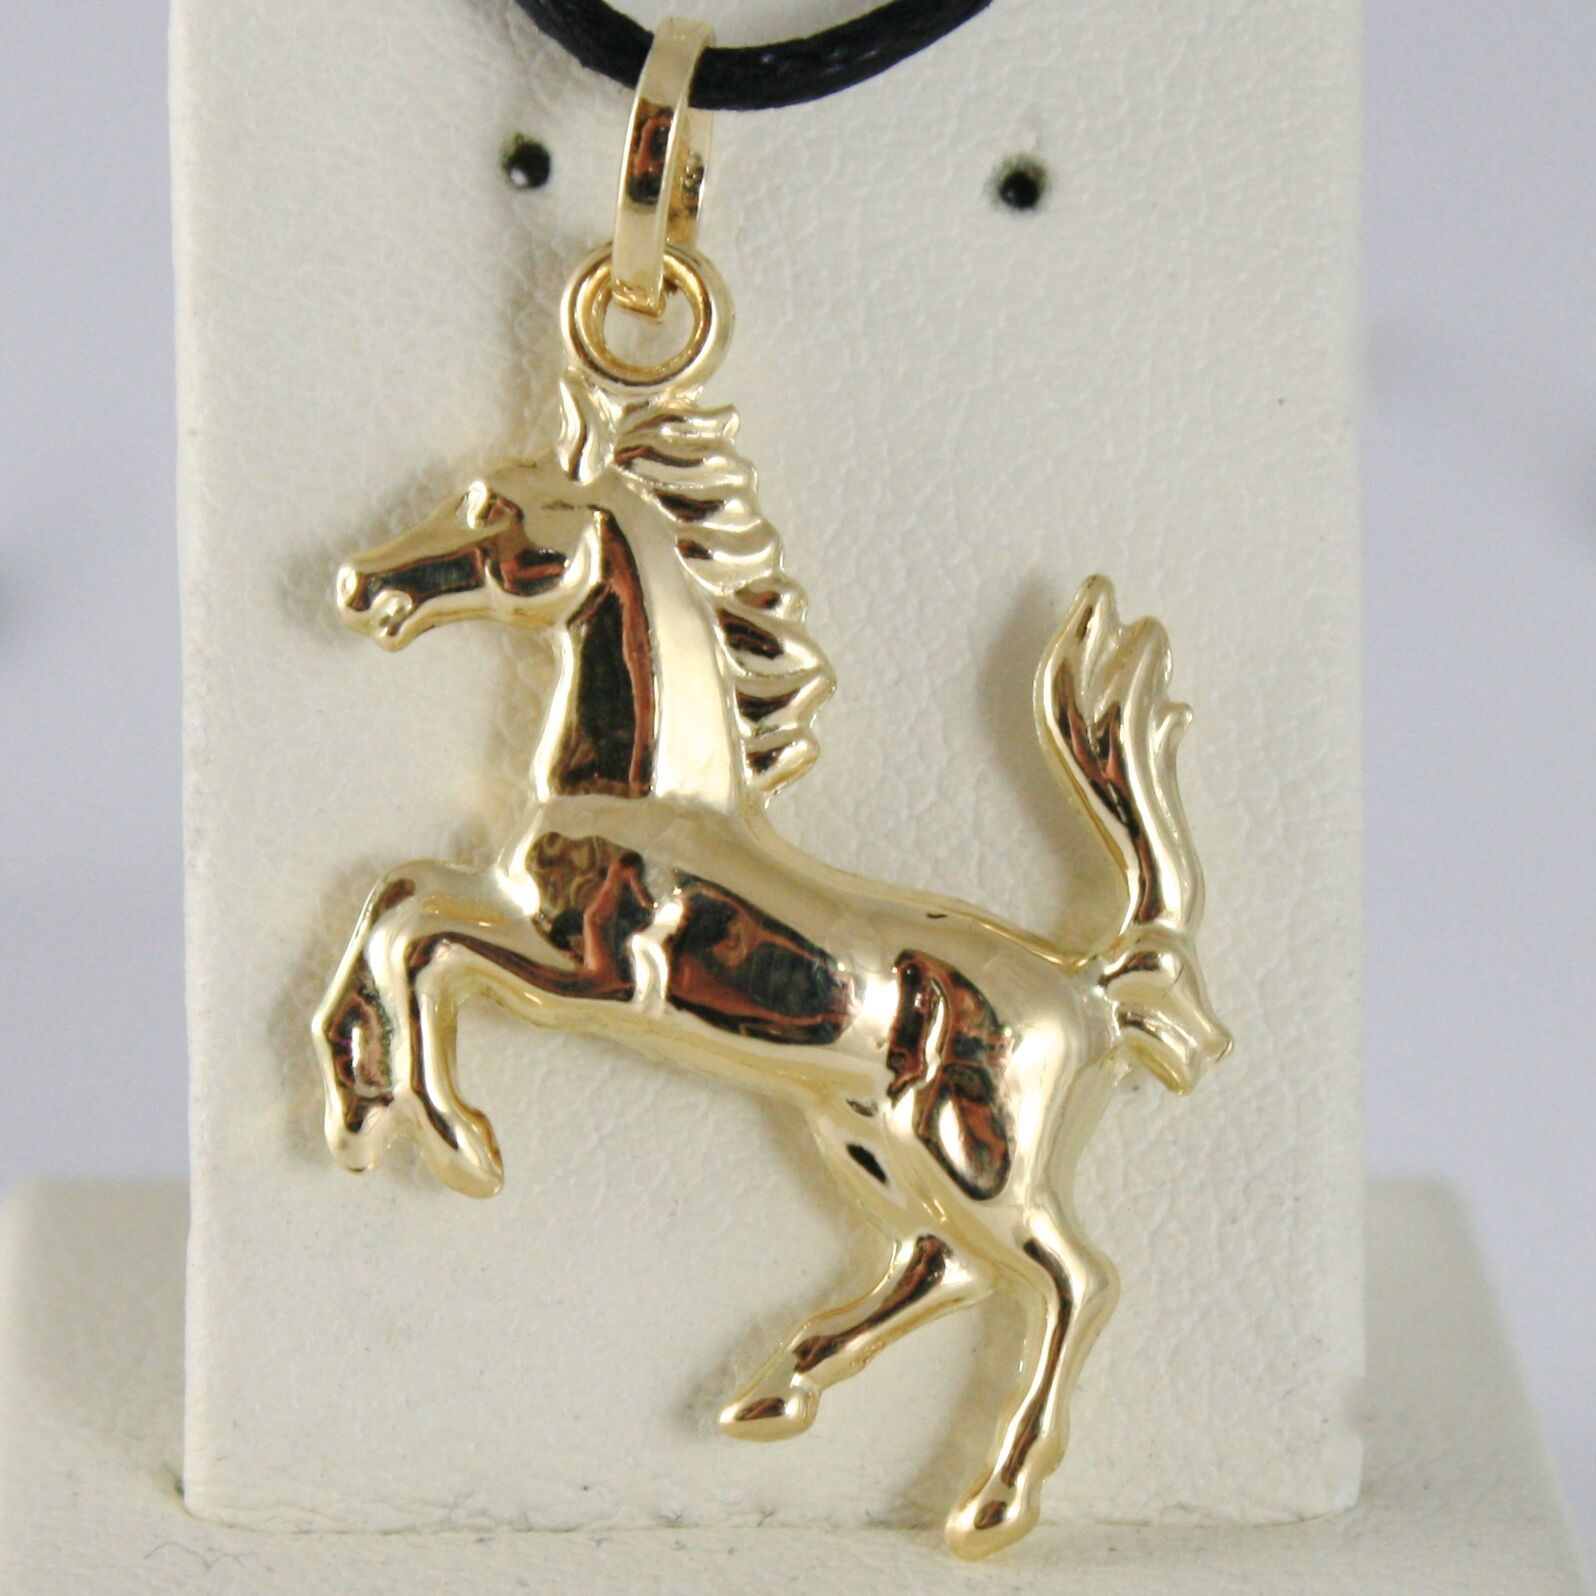 Yellow Gold Pendant Or White 750 18K, Horse Convex, Pony